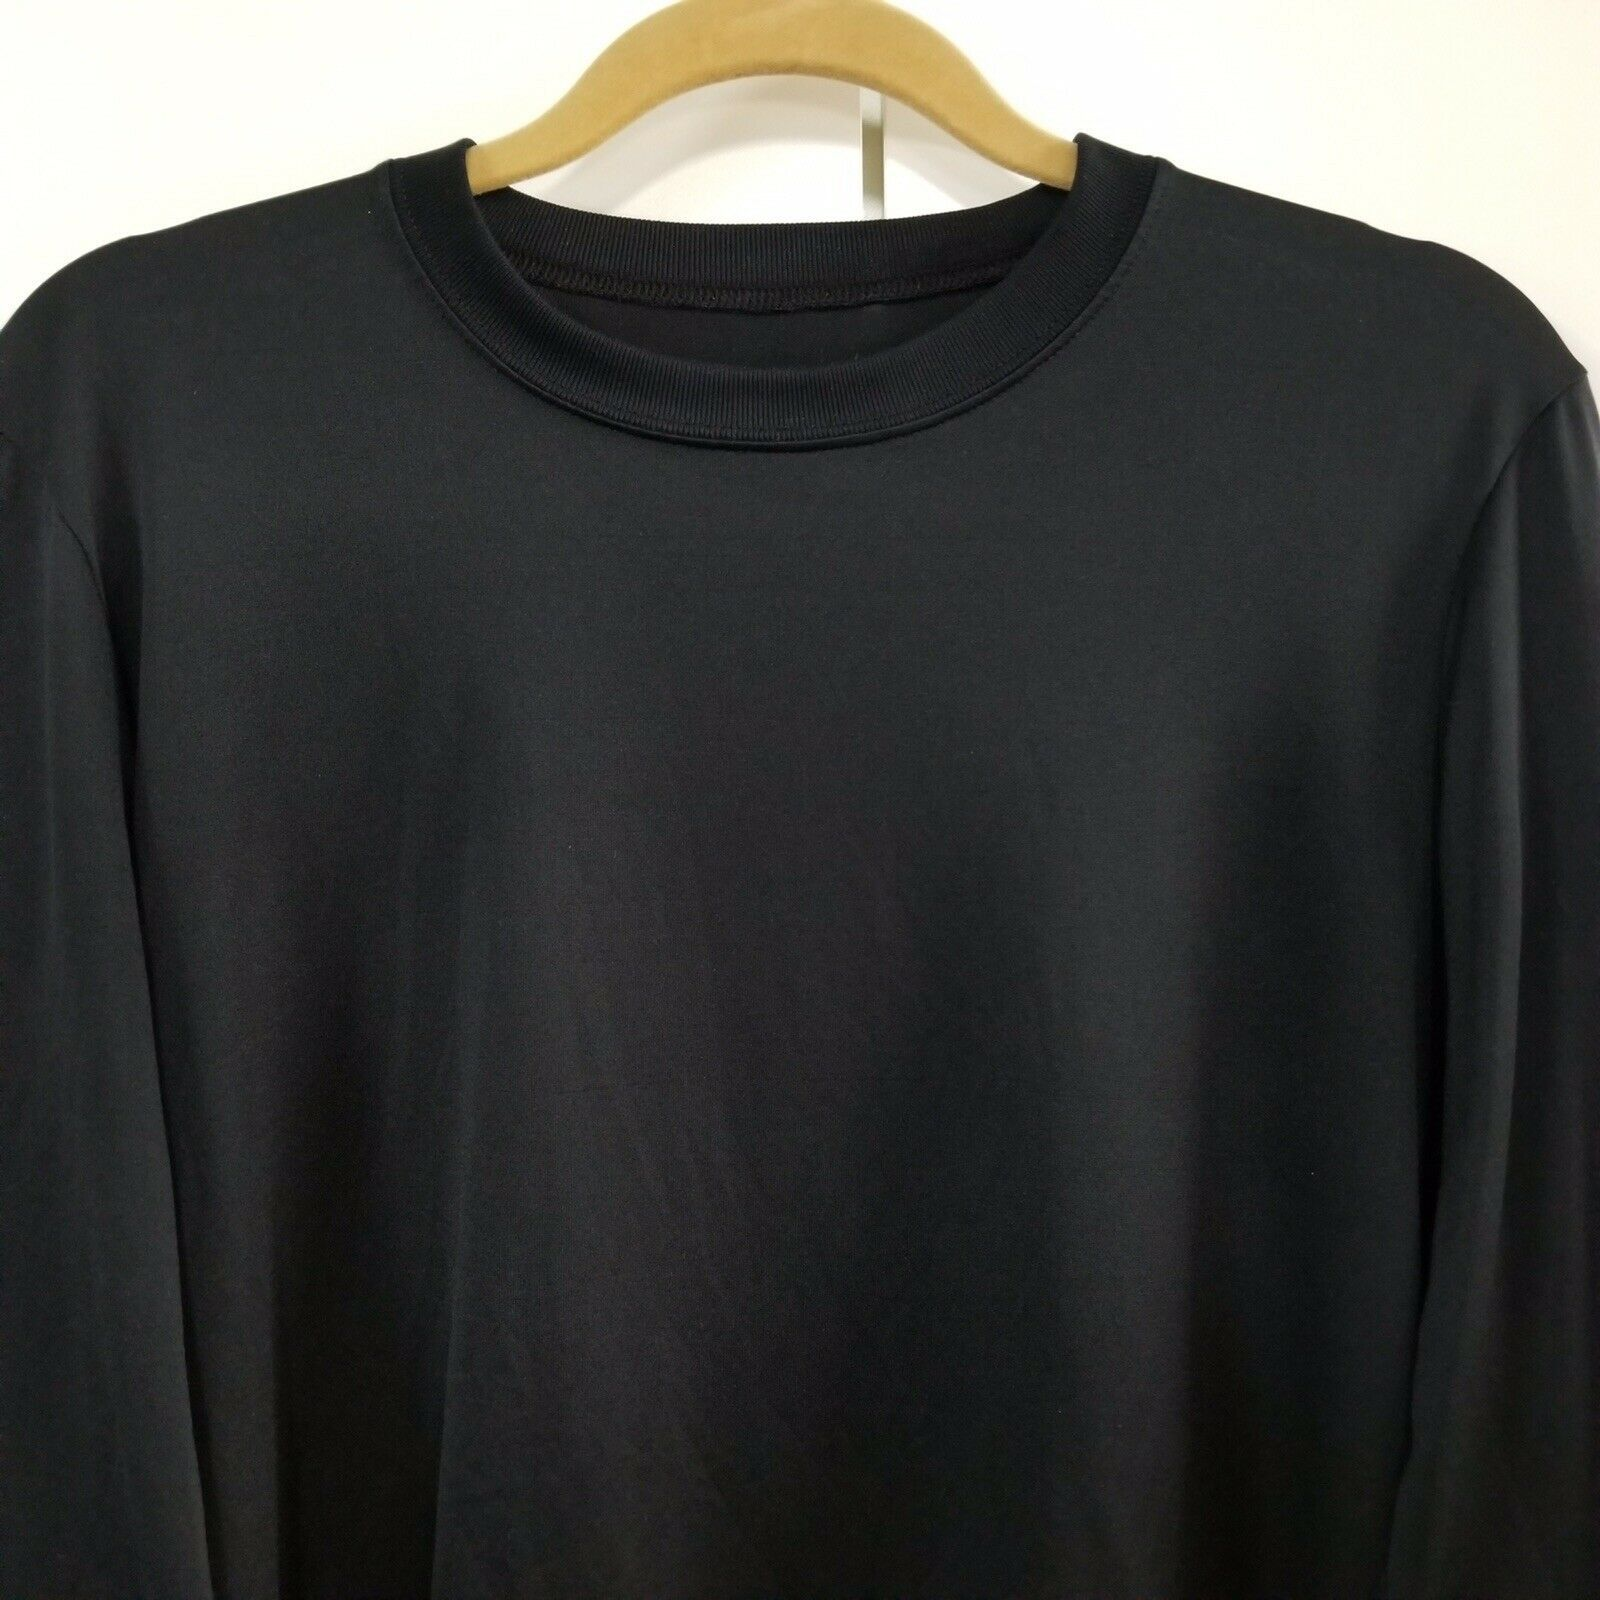 Primary image for Patagonia Mens Capilene Long Sleeve Lightweight Shirt - Black - M